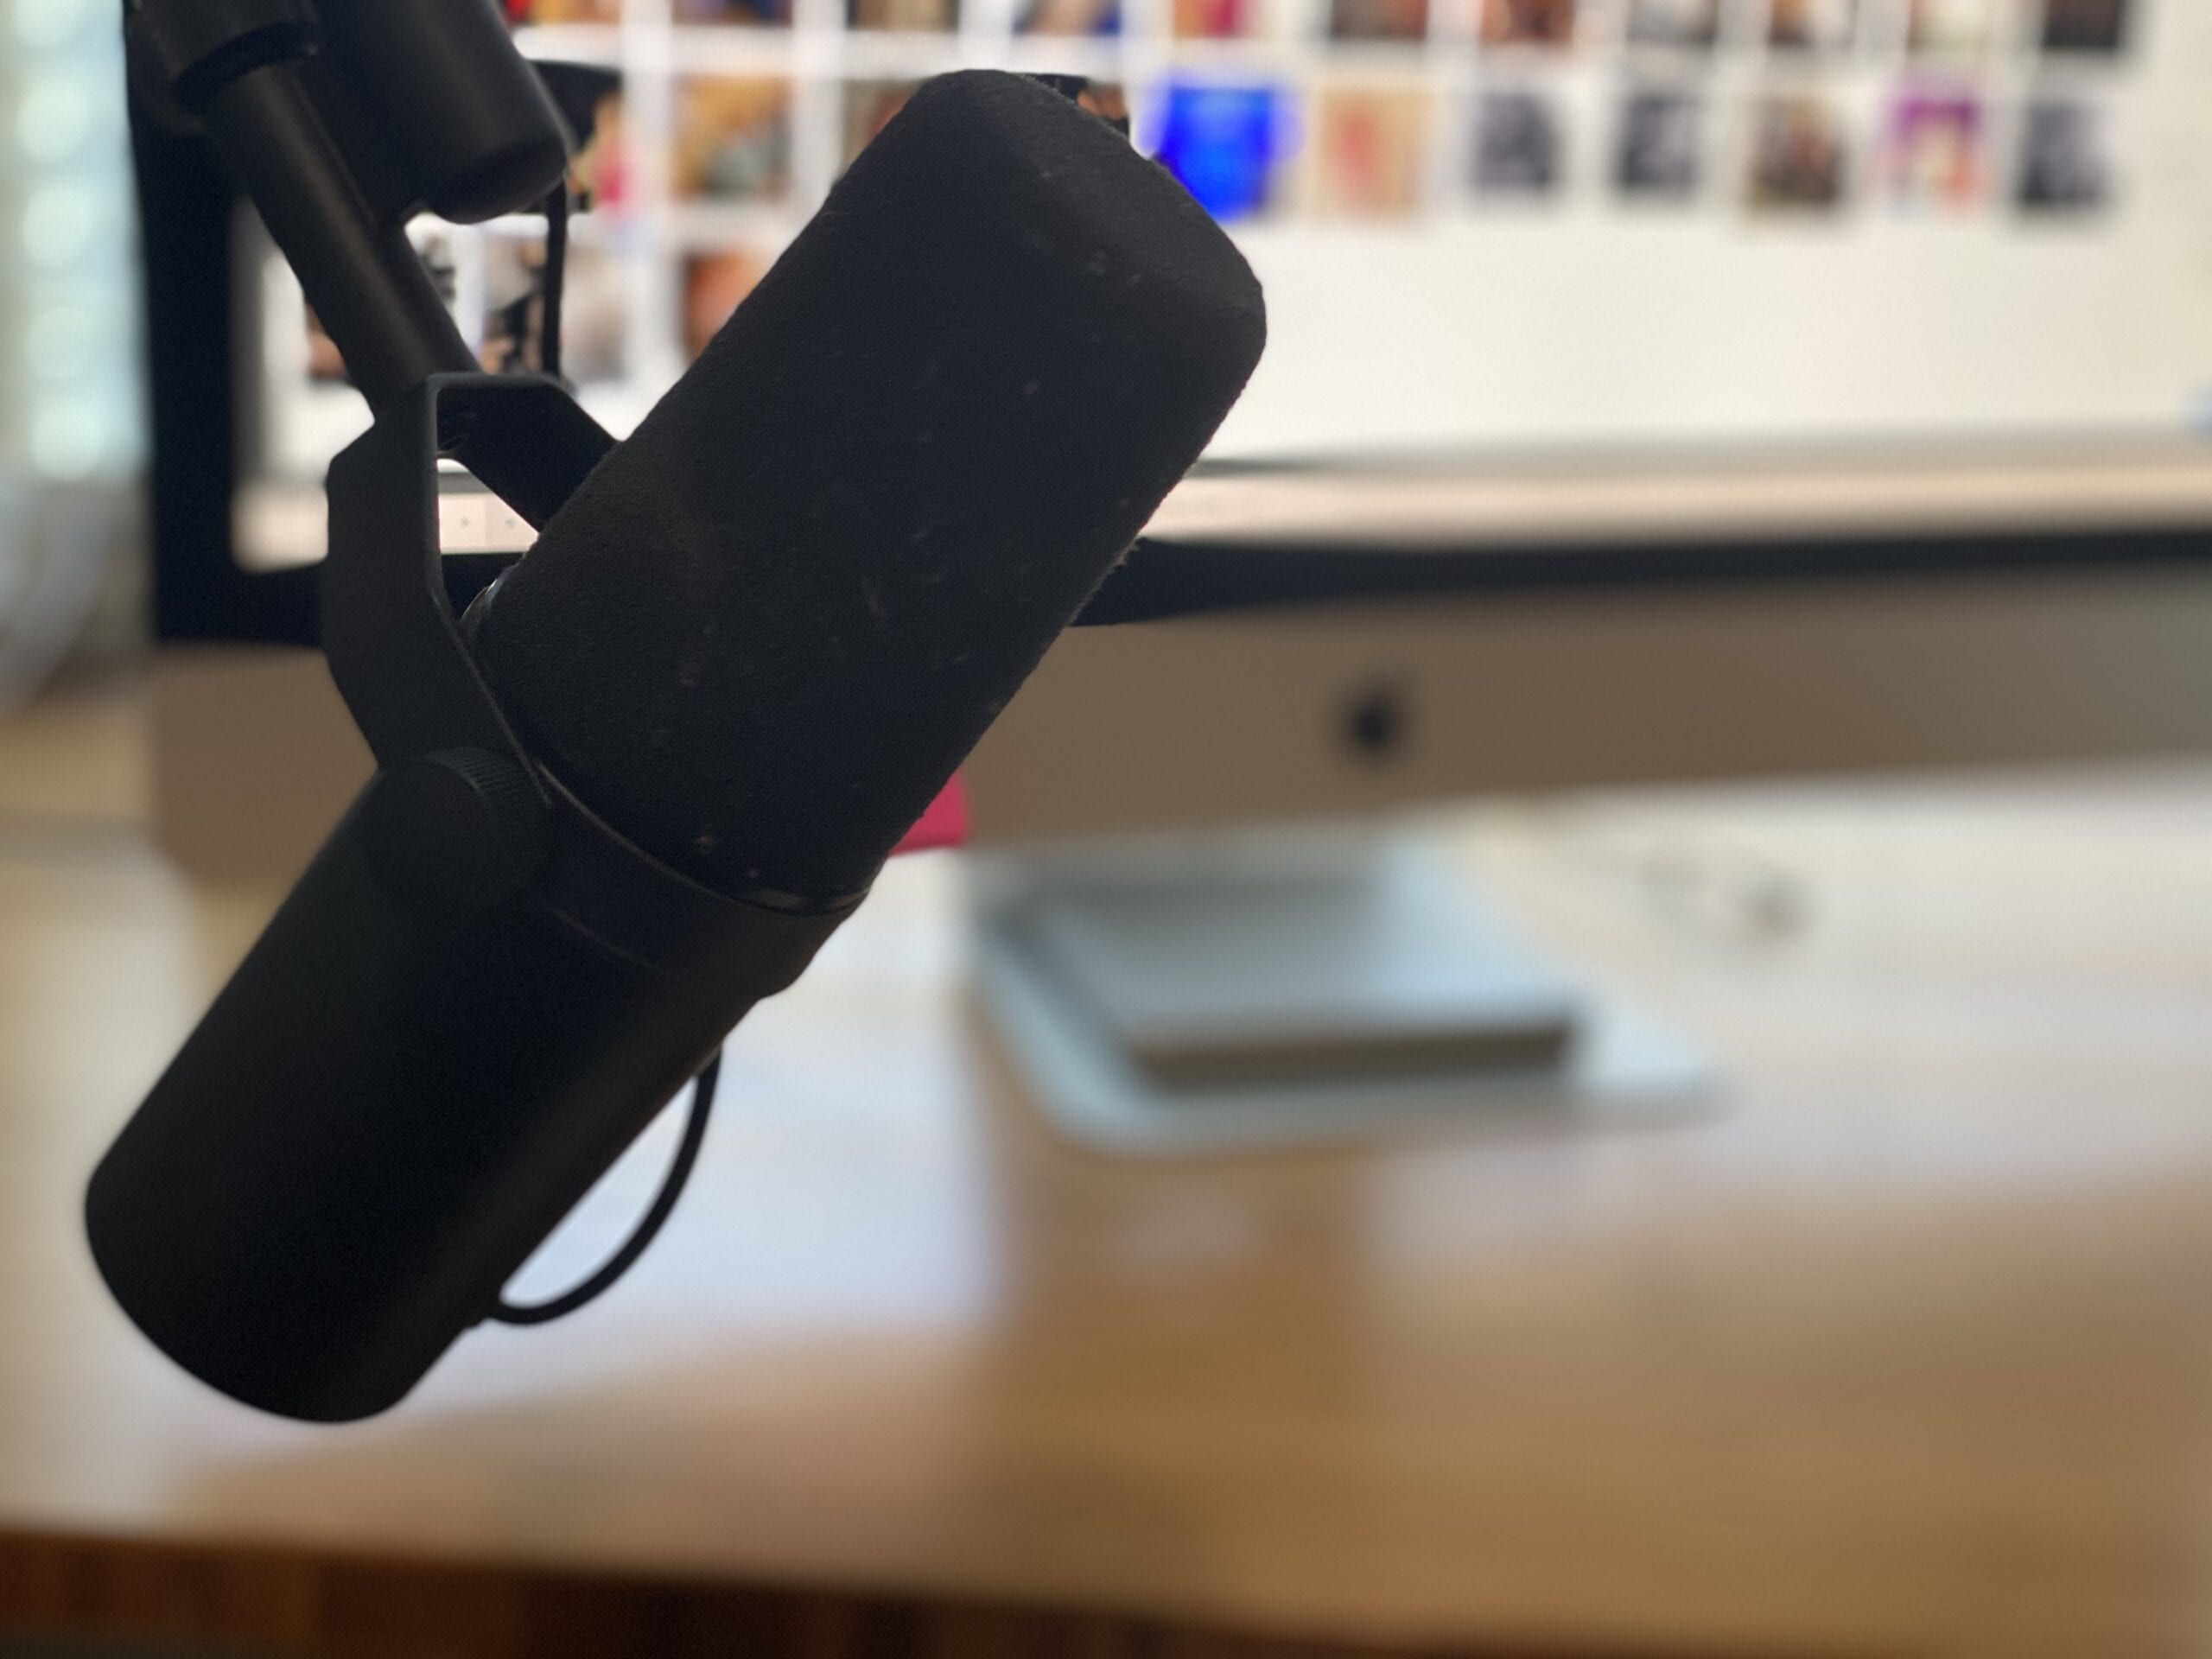 using a Shure sm7b Reviewing Your Business Delivery Model as You Transition to Online Only